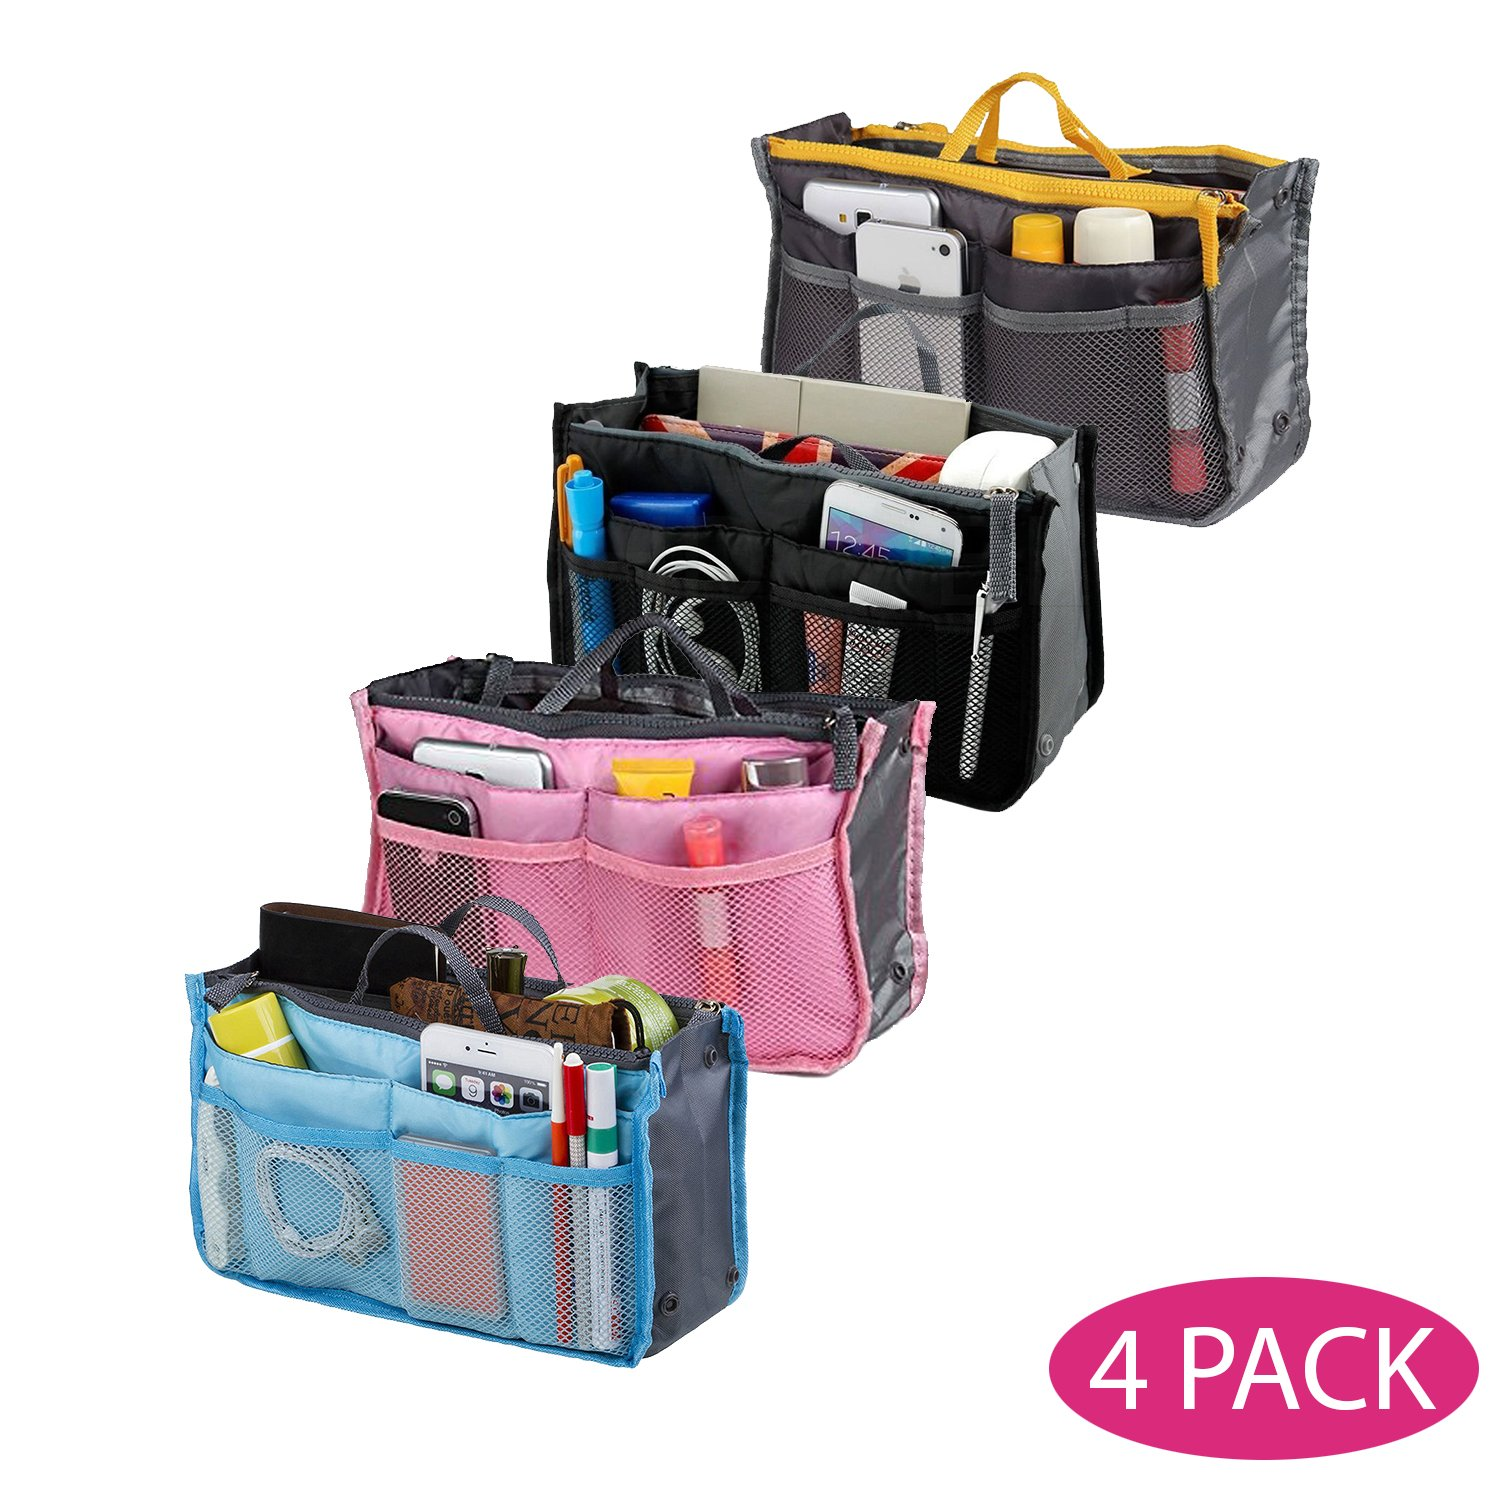 Top Quality Organizer Travel Bag For Women| 12 Compartment Tote/ Toiletry Bag For Makeup & Travel/ Cosmetic Accessories Organizing| Large Liner Insert-Organizer| Women's Handbags By Go Beyond